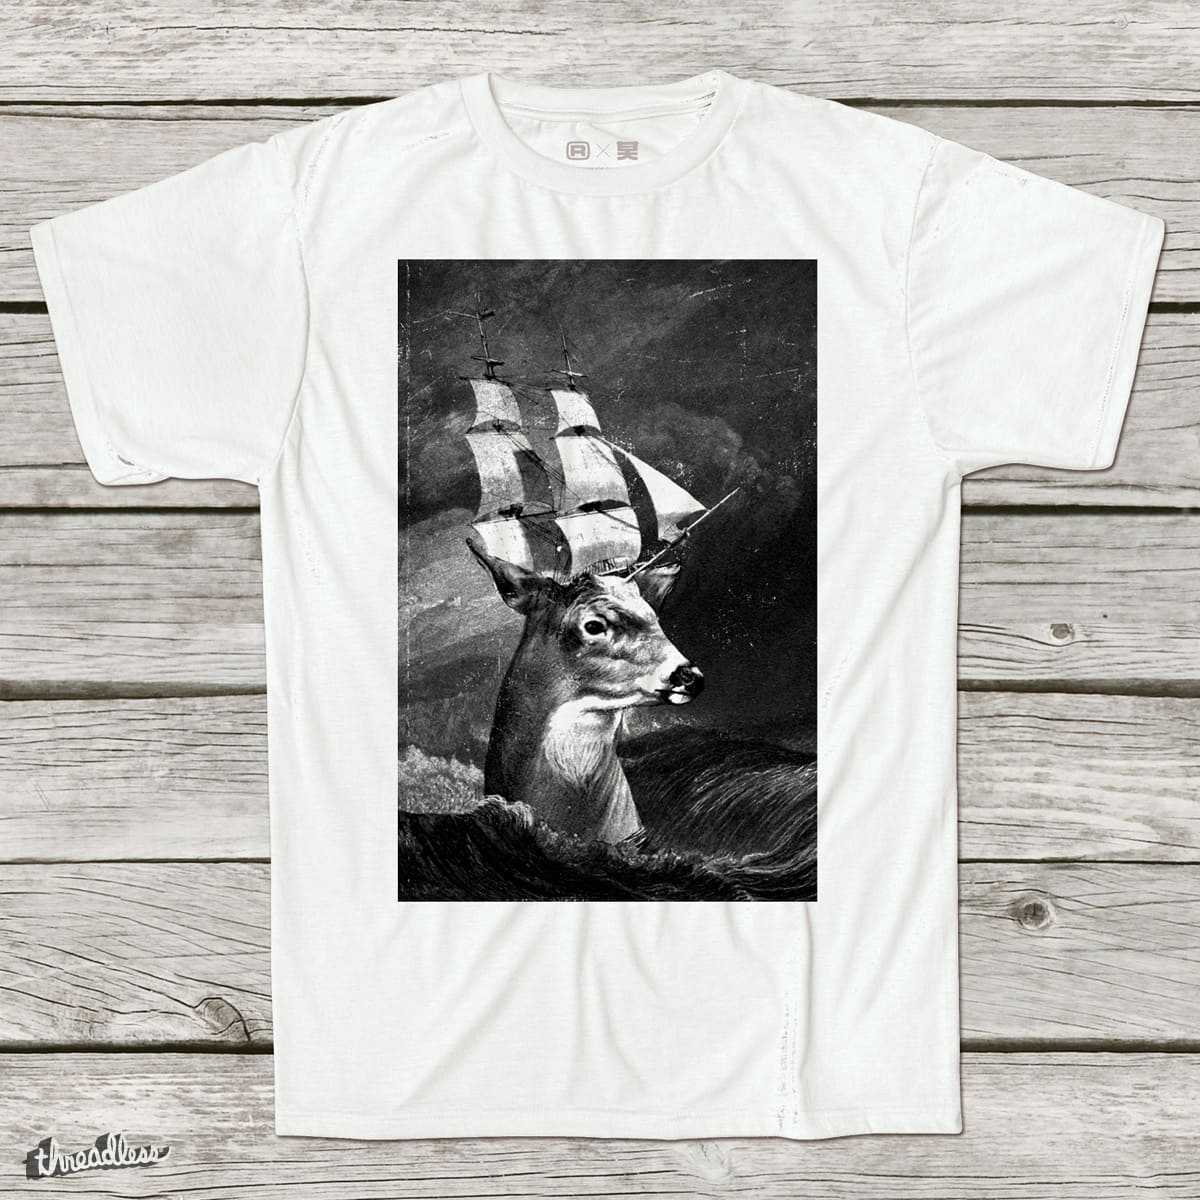 Set Sail by DinoMike on Threadless